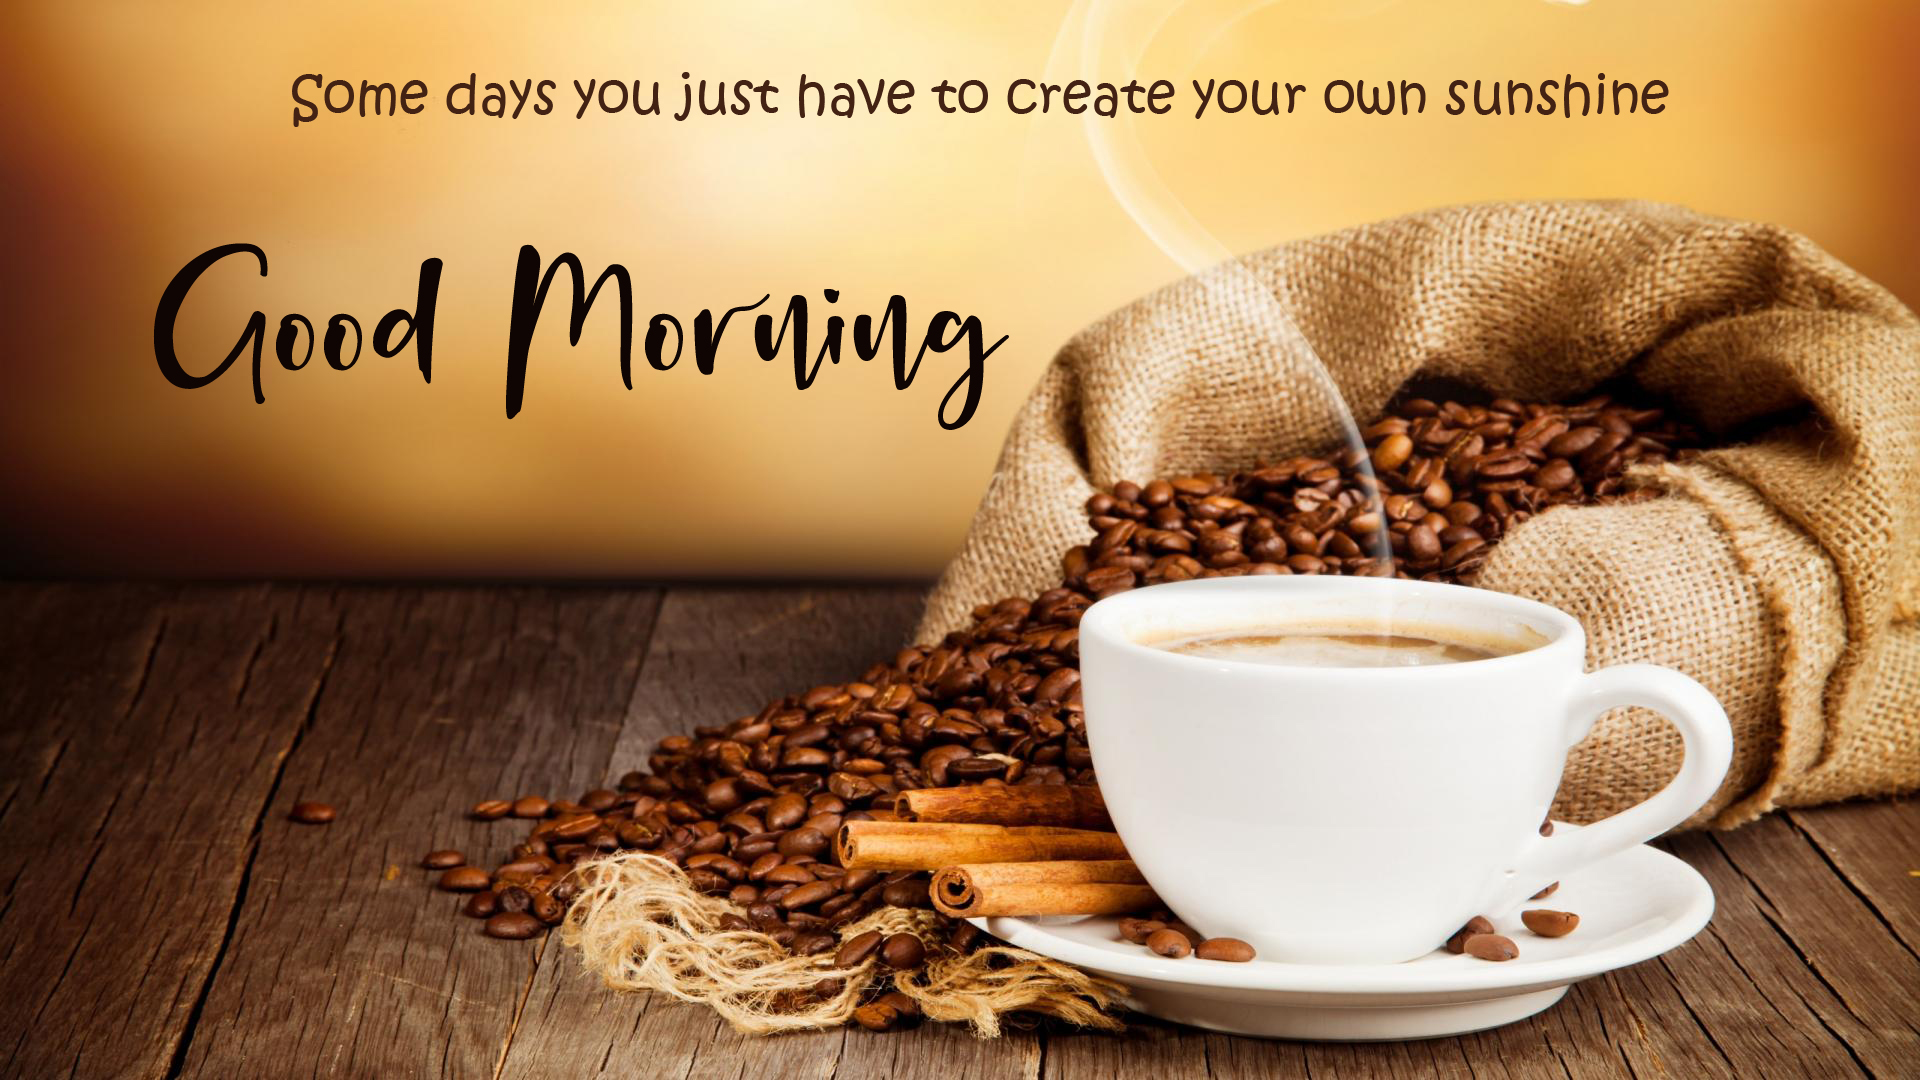 Good Morning Coffee Quotes Best Hd Wallpapers For Laptops And